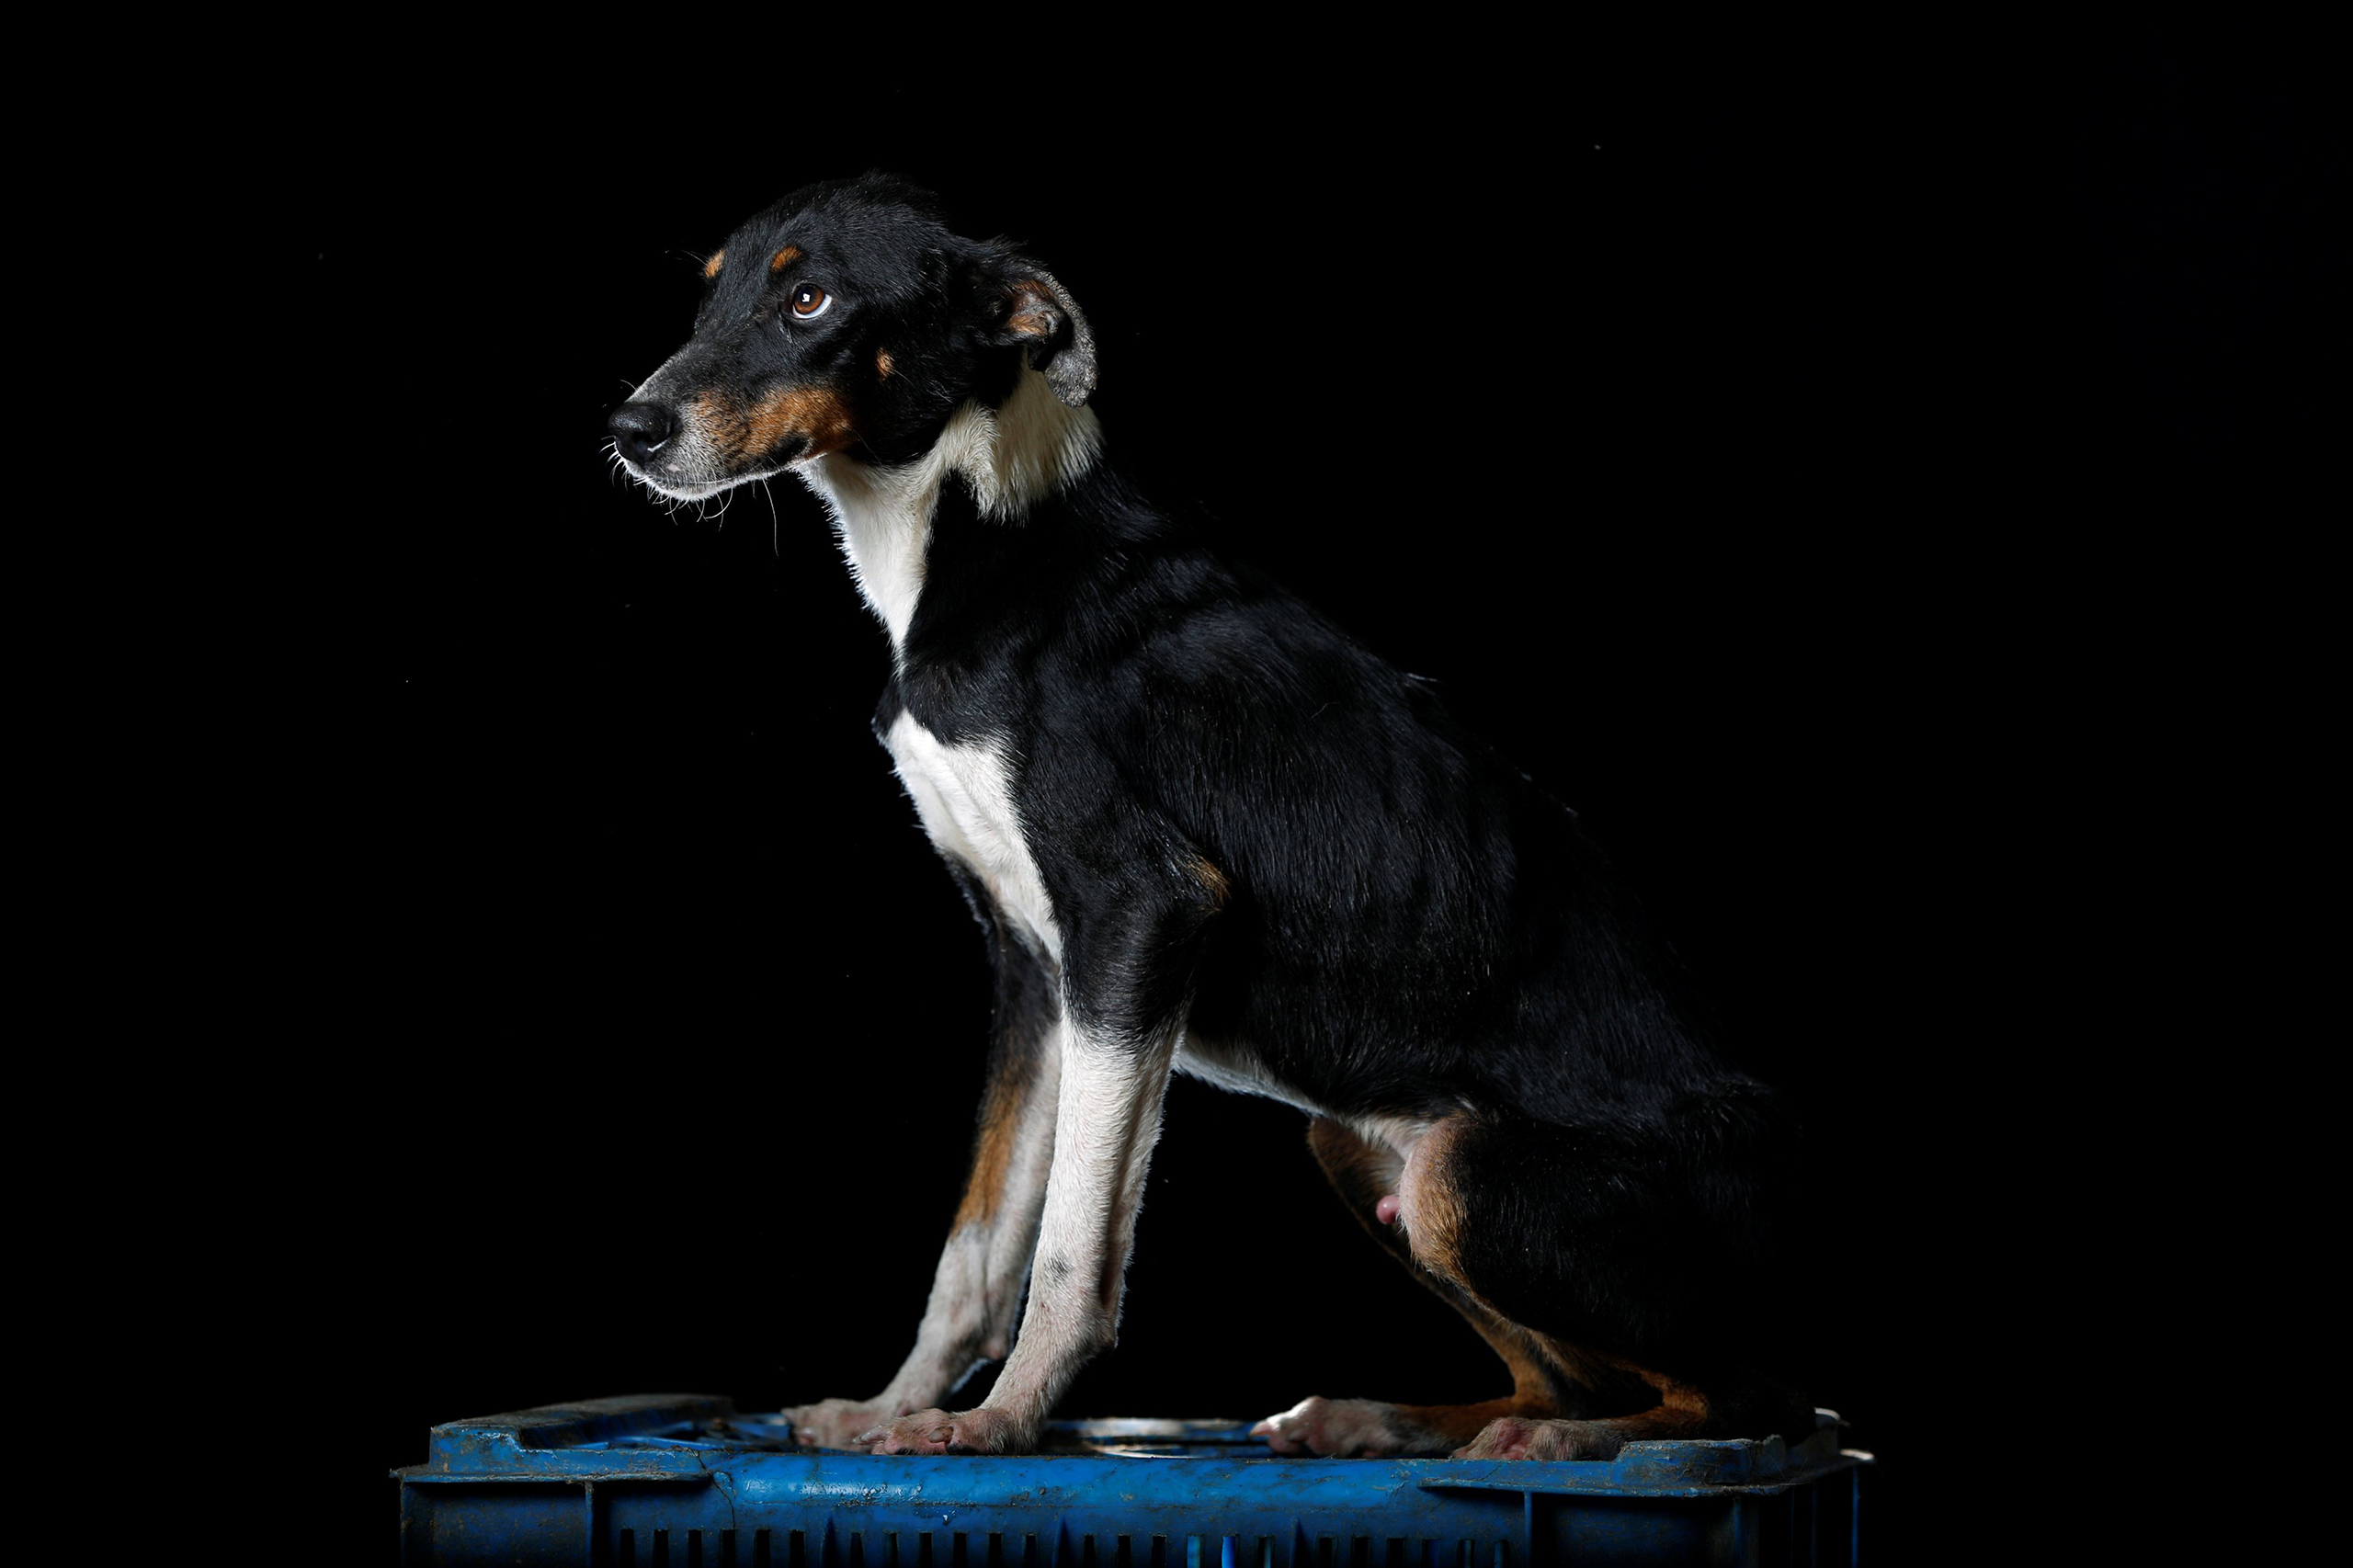 Lucho is pictured at the Famproa dogs shelter in Los Teques, Venezuela Aug. 16, 2016.  Someone left him with his three brothers in a cardboard box outside the shelter a year and a half ago. Two of them died and one was adopted by a family. He is a favorite at the shelter but he is an escape artist, he has the ability to get out of anywhere,  said Maria Silva, who takes care of dogs at the shelter.